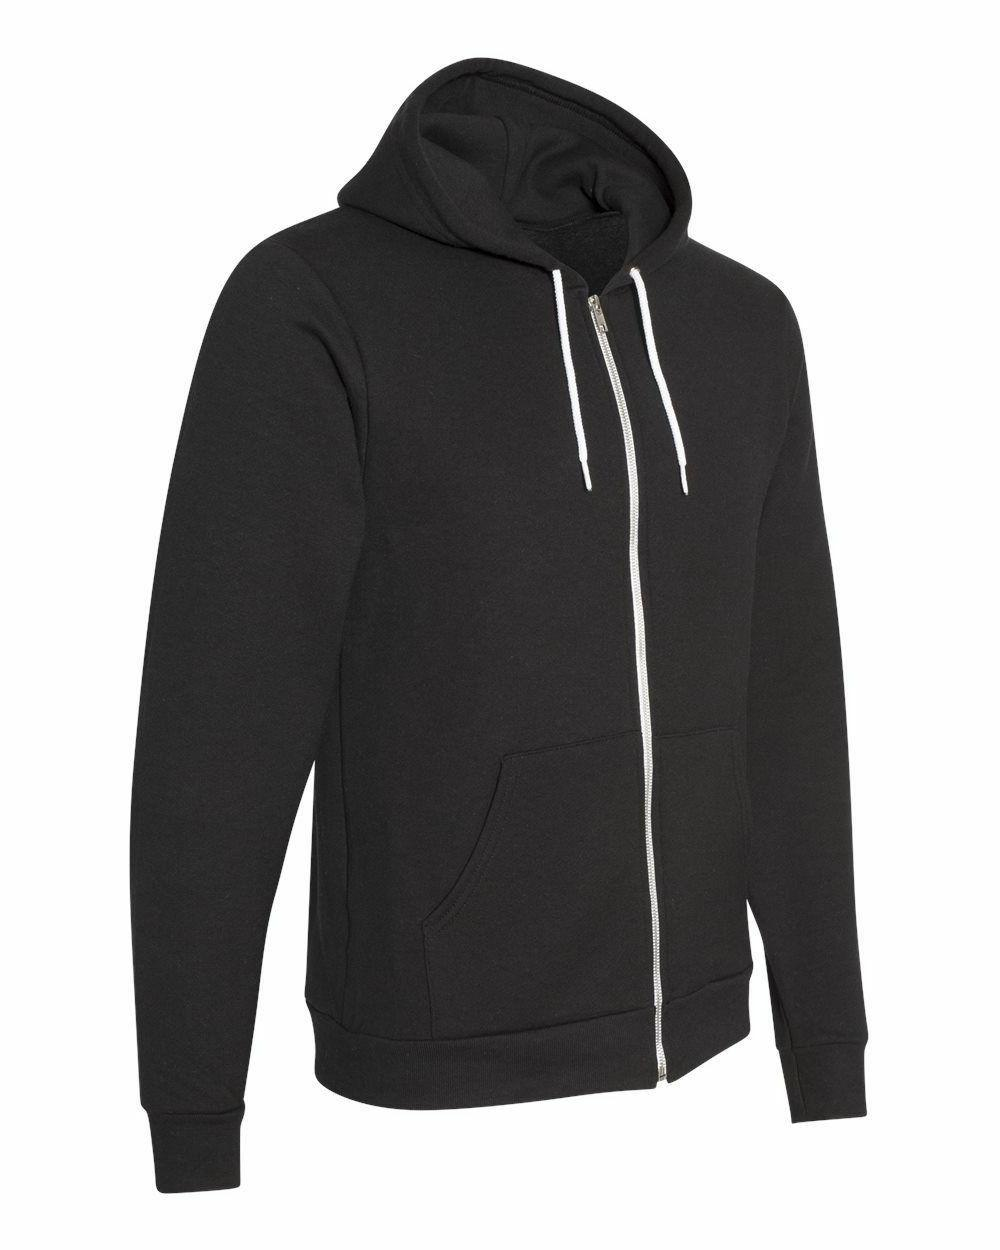 American Apparel - Zip Hoodie UNISEX Fleece Hooded Sweatshirt XS-2XL,